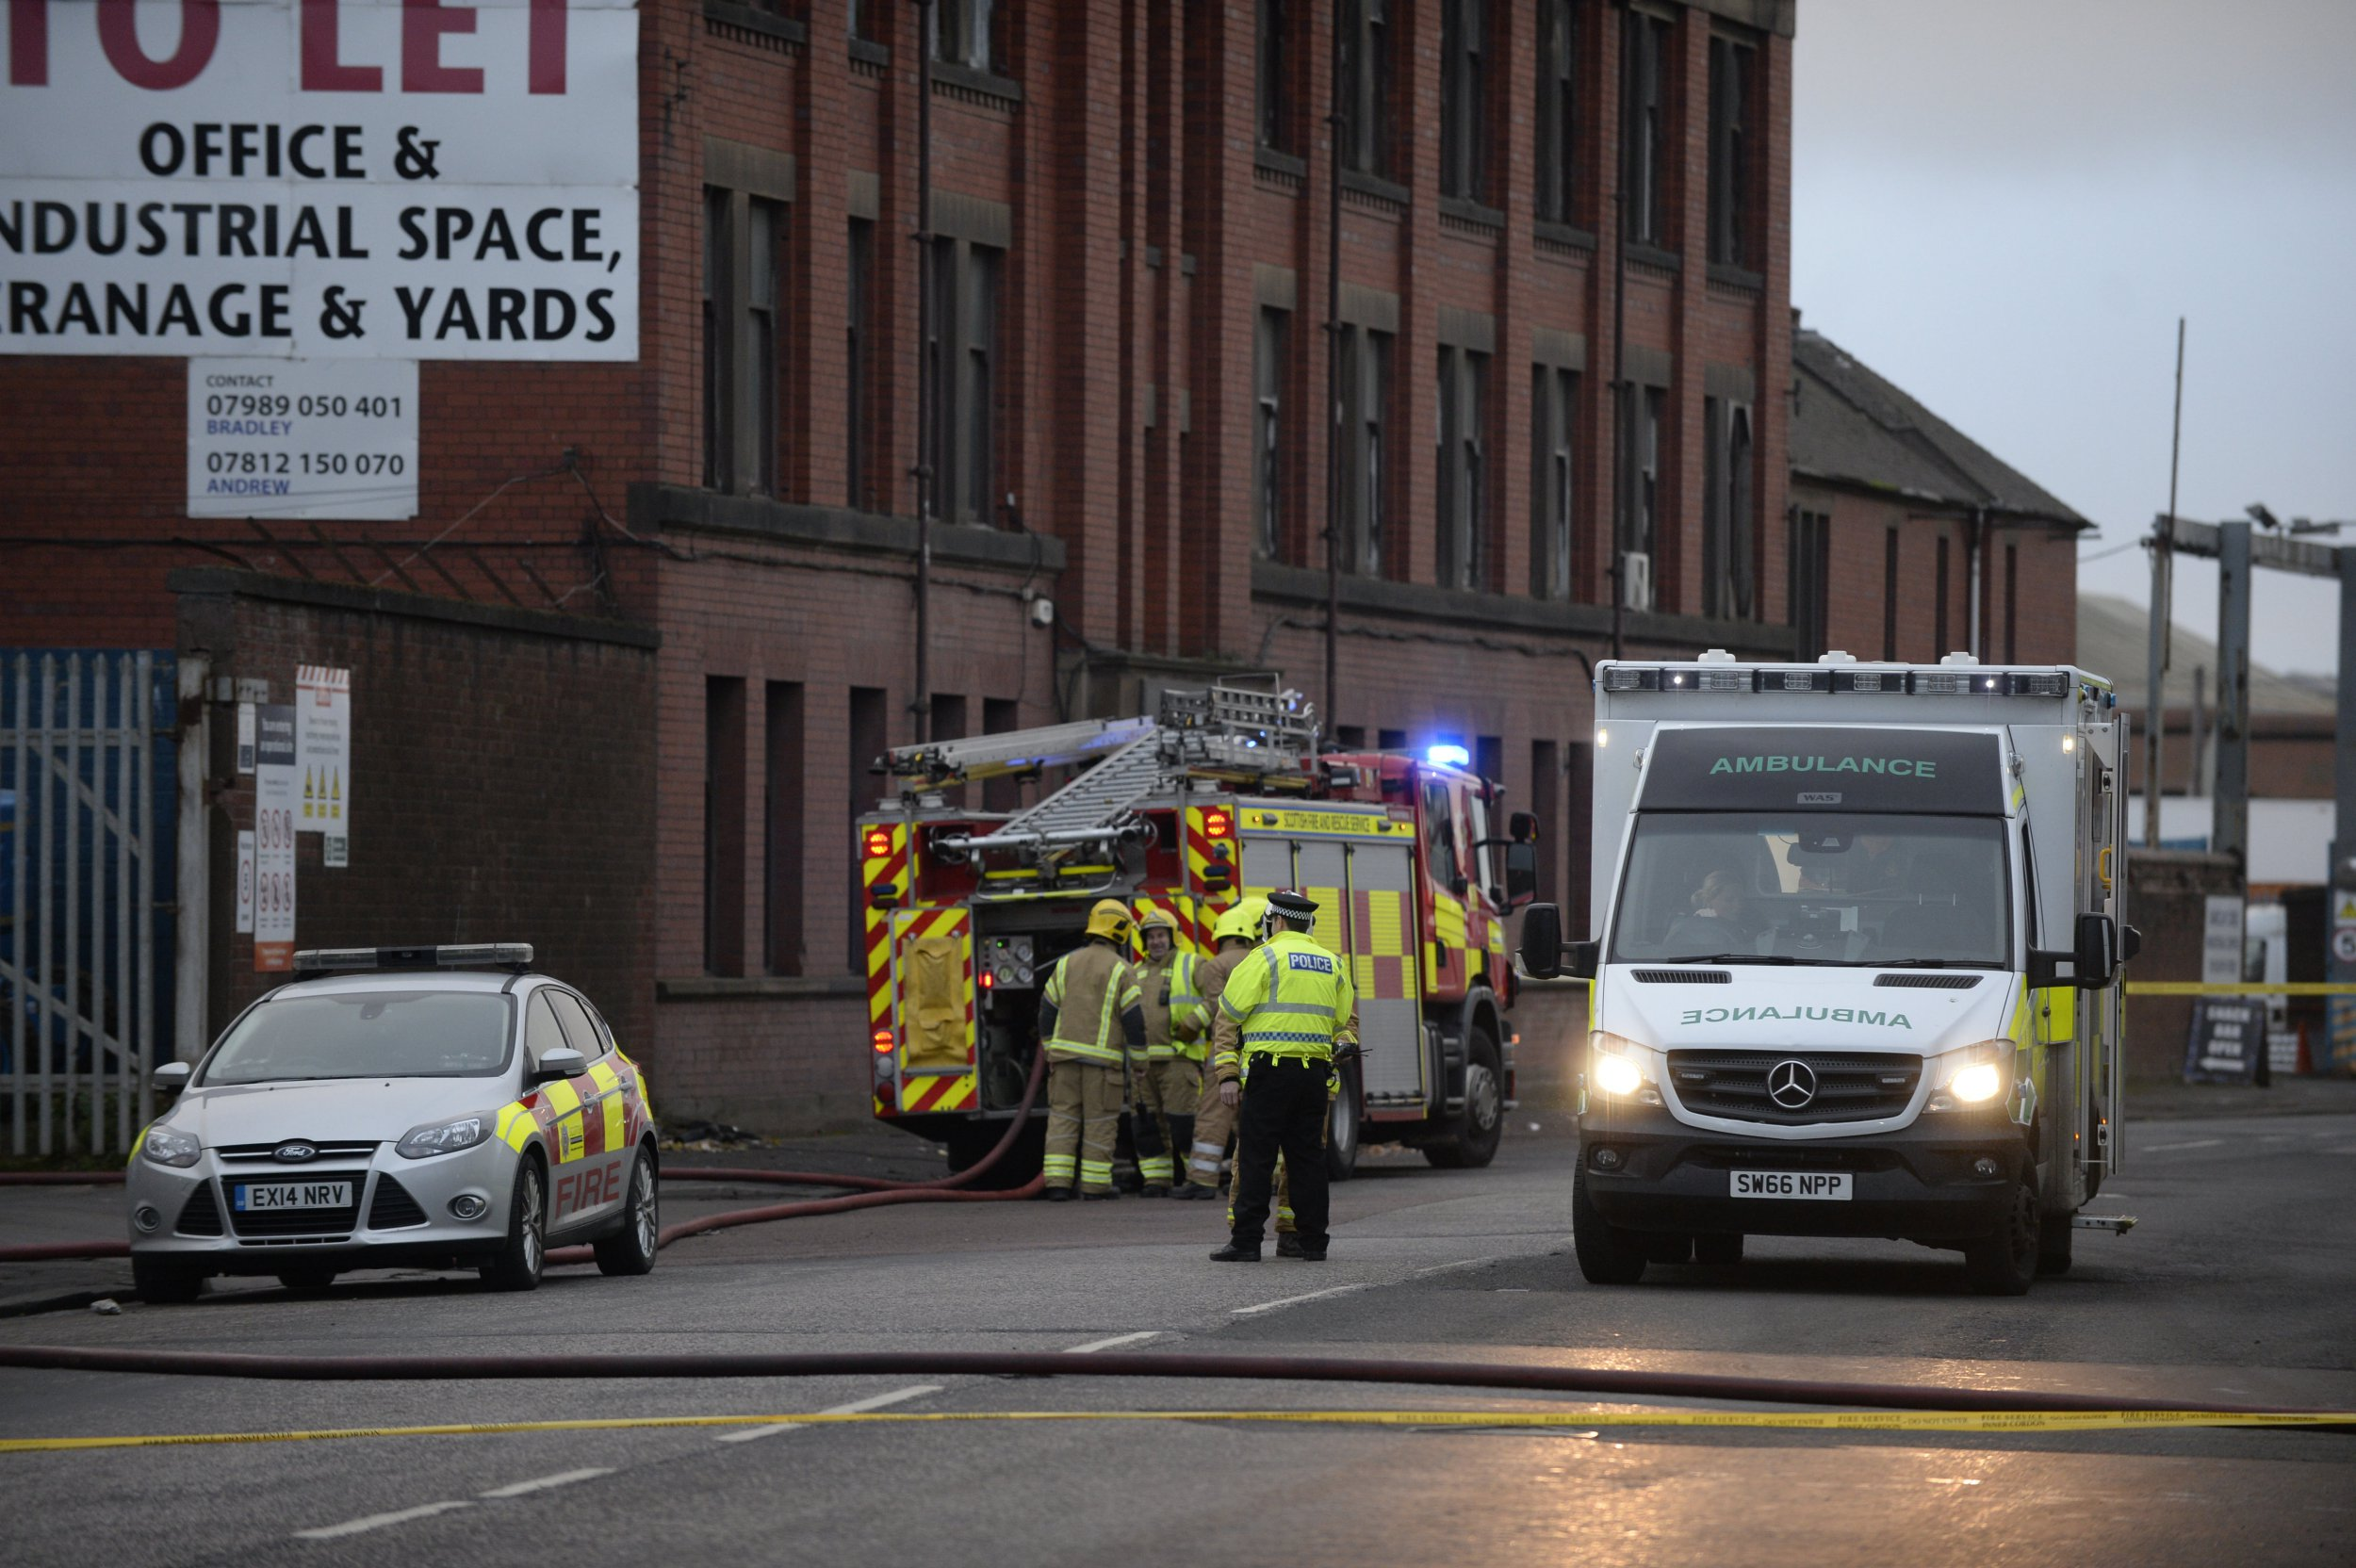 Firefighters attend an incident at a scrapyard on South Street, Glasgow, after an explosion. October 23, 2018. Emergency services have been called to reports of an explosion at a factory in the Whiteinch area of Glasgow. Police, ambulance and fire crews are at the scene around South Street and a cordon has been put in place in the area. The incident happened at the EMR scrapyard. There are no reports of anyone being injured.